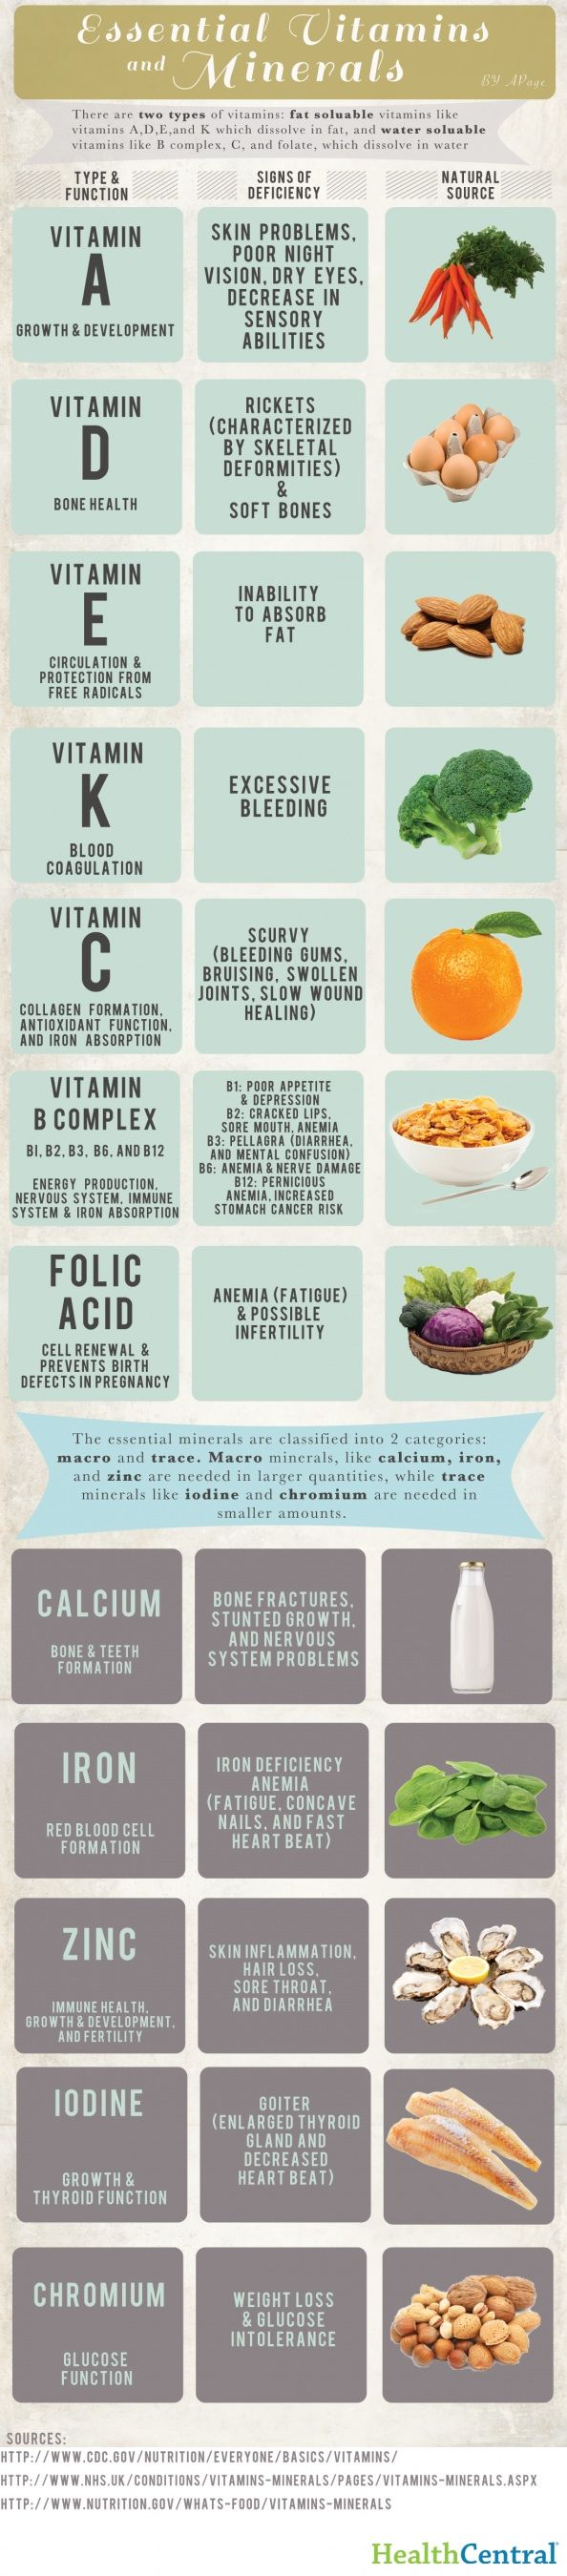 Essential Vitamins and Minerals -- This infographic gives you a breakdown of what should be included in your diet and why.